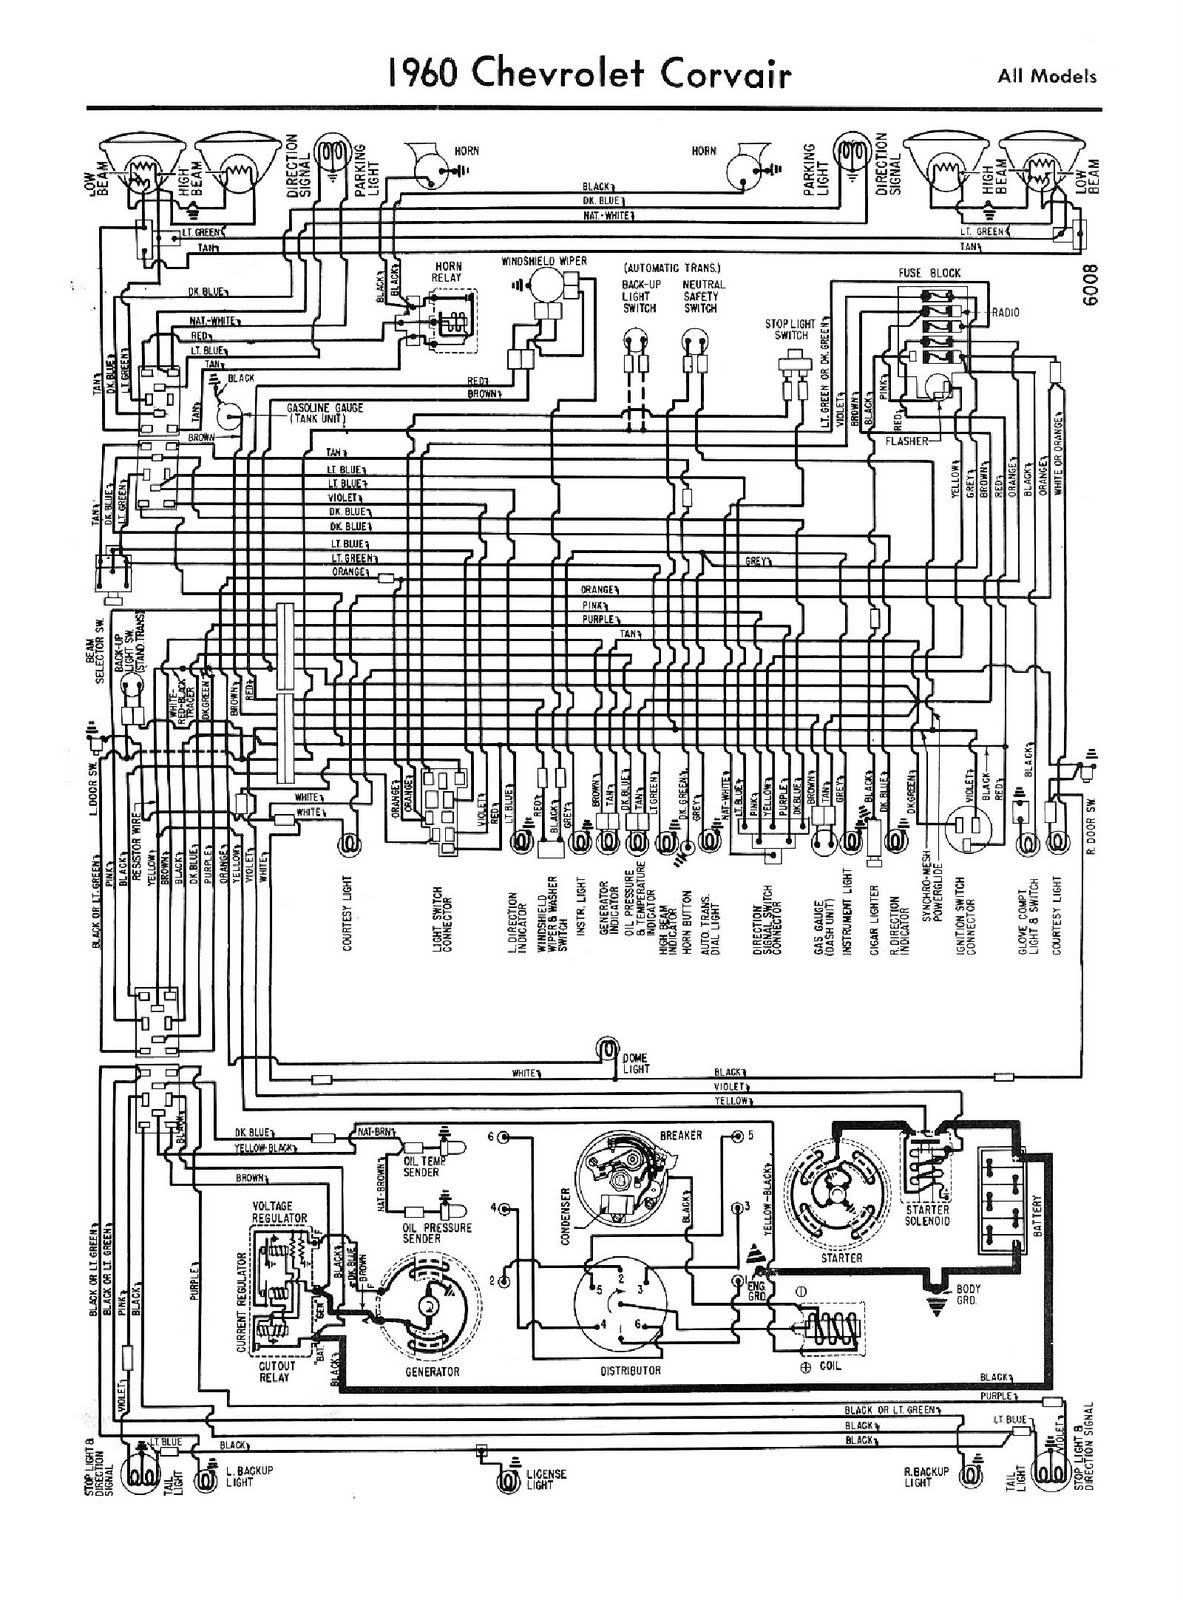 60 Chevy Wiper Wiring Diagram Electrical Diagrams 2 Speed Schematic Motor